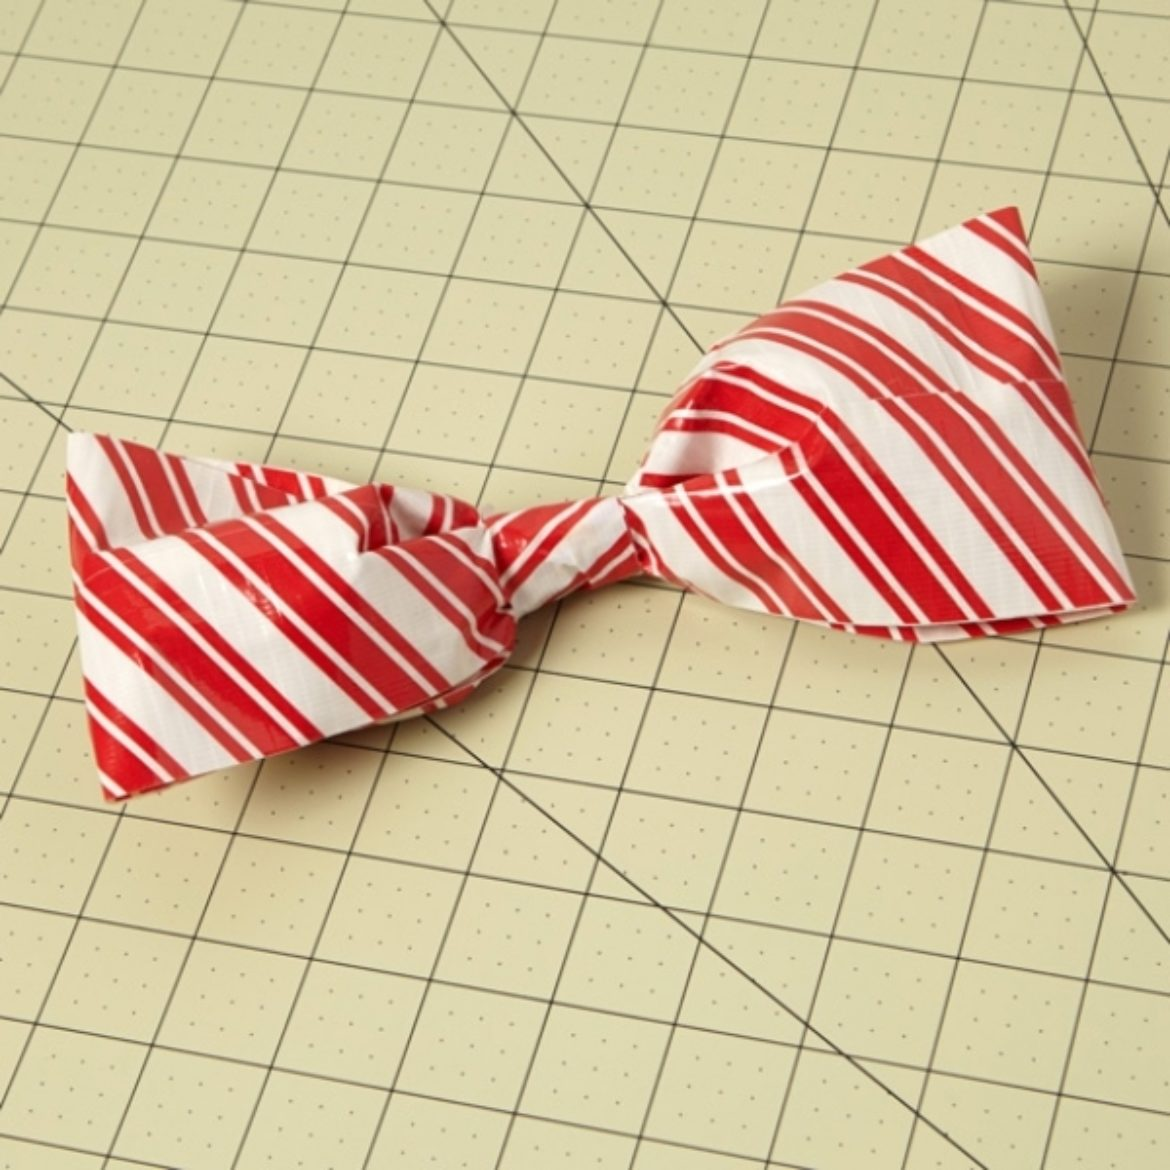 Bow fashioned from a loop of a doubled over strip of Duck Tape, secured tightly at the part where the two ends meet to create a bow tie shape